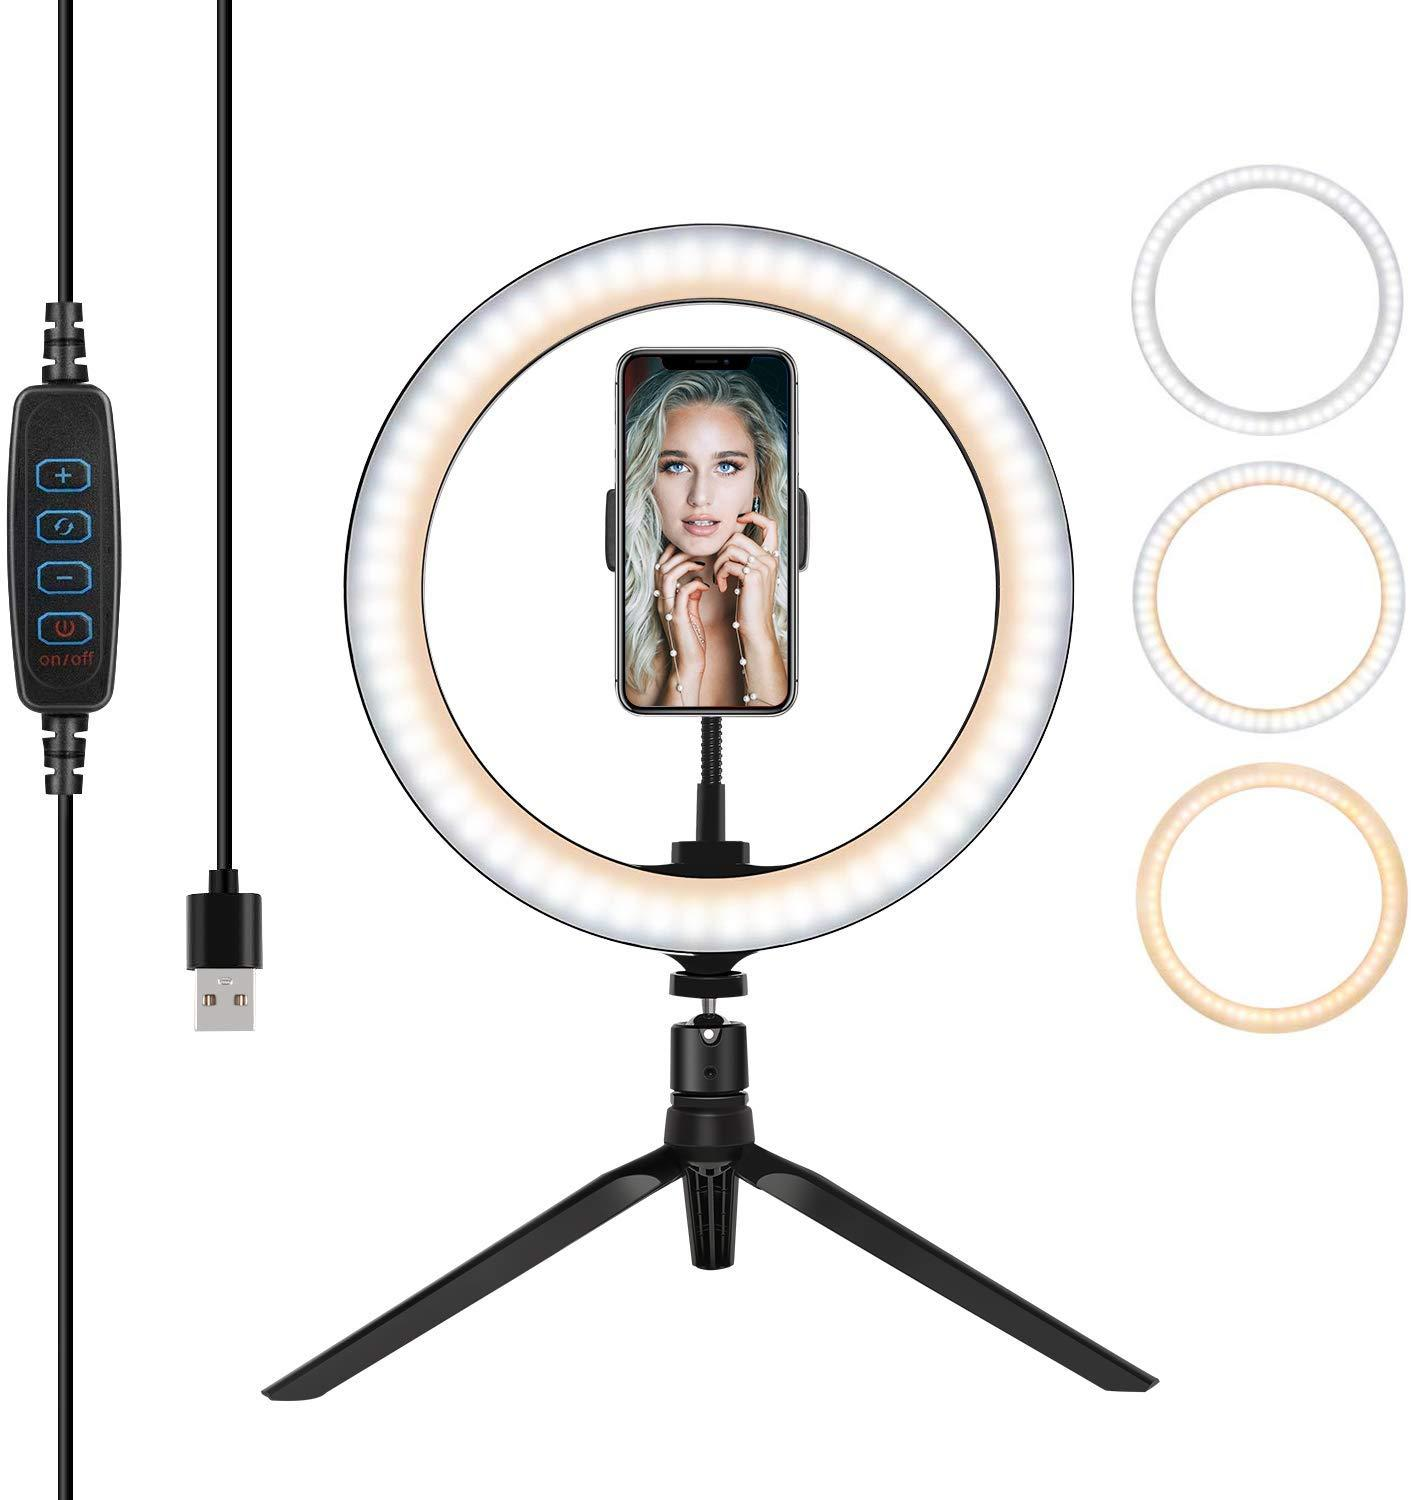 10 Inch LED Dimmable Makeup Ring Light For Live Streaming & YouTube Video - Desktop Selfie Lamp With Tripod & Cell Phone Holder